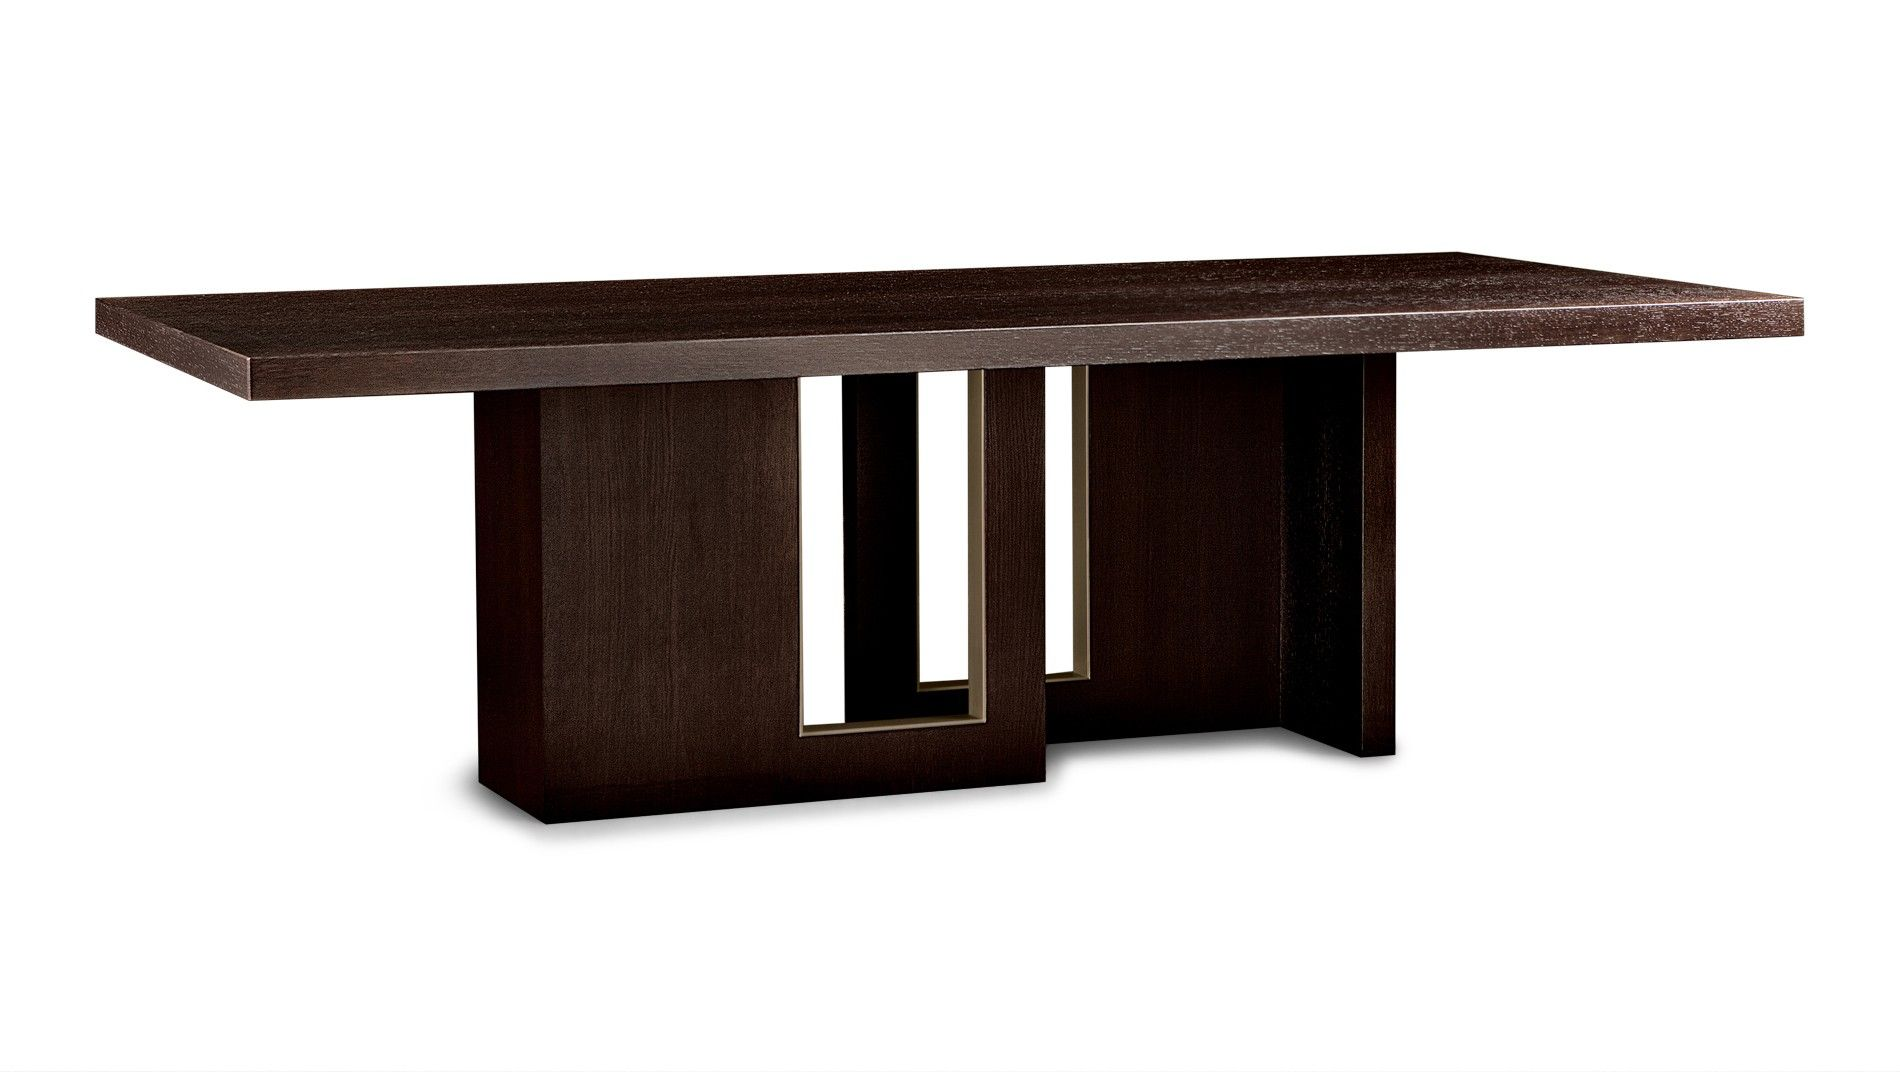 Shop Oasis Tao Dining Table At Luxdeco Com Discover Designer